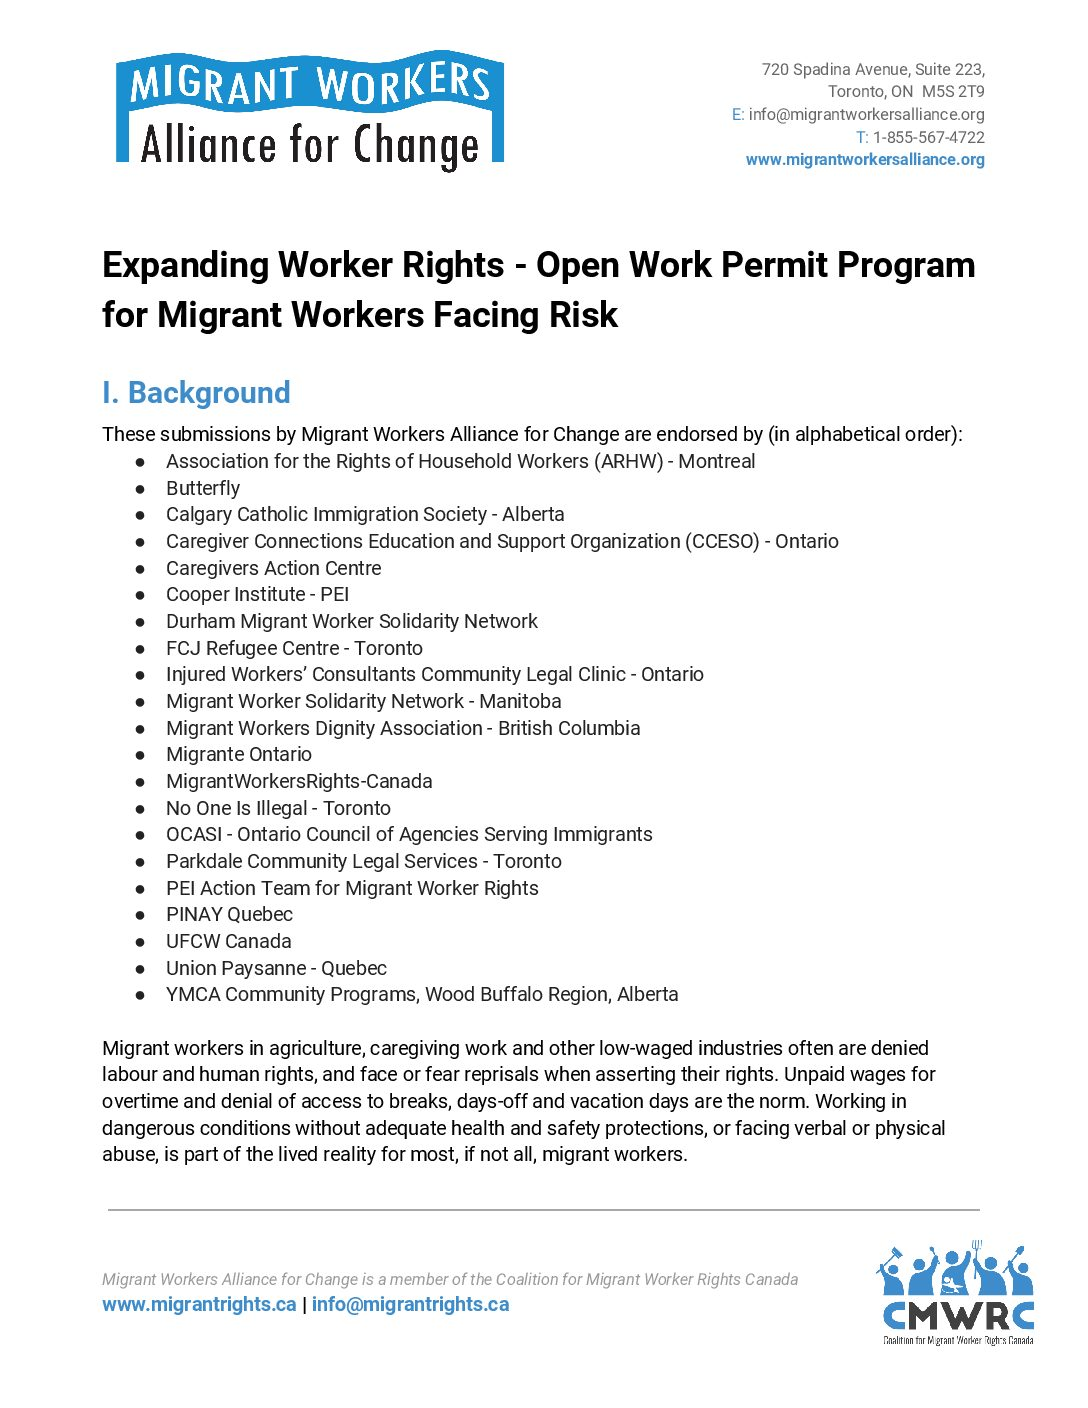 Policy Submissions: Open Work Permit Program for Migrant Workers Facing Risk